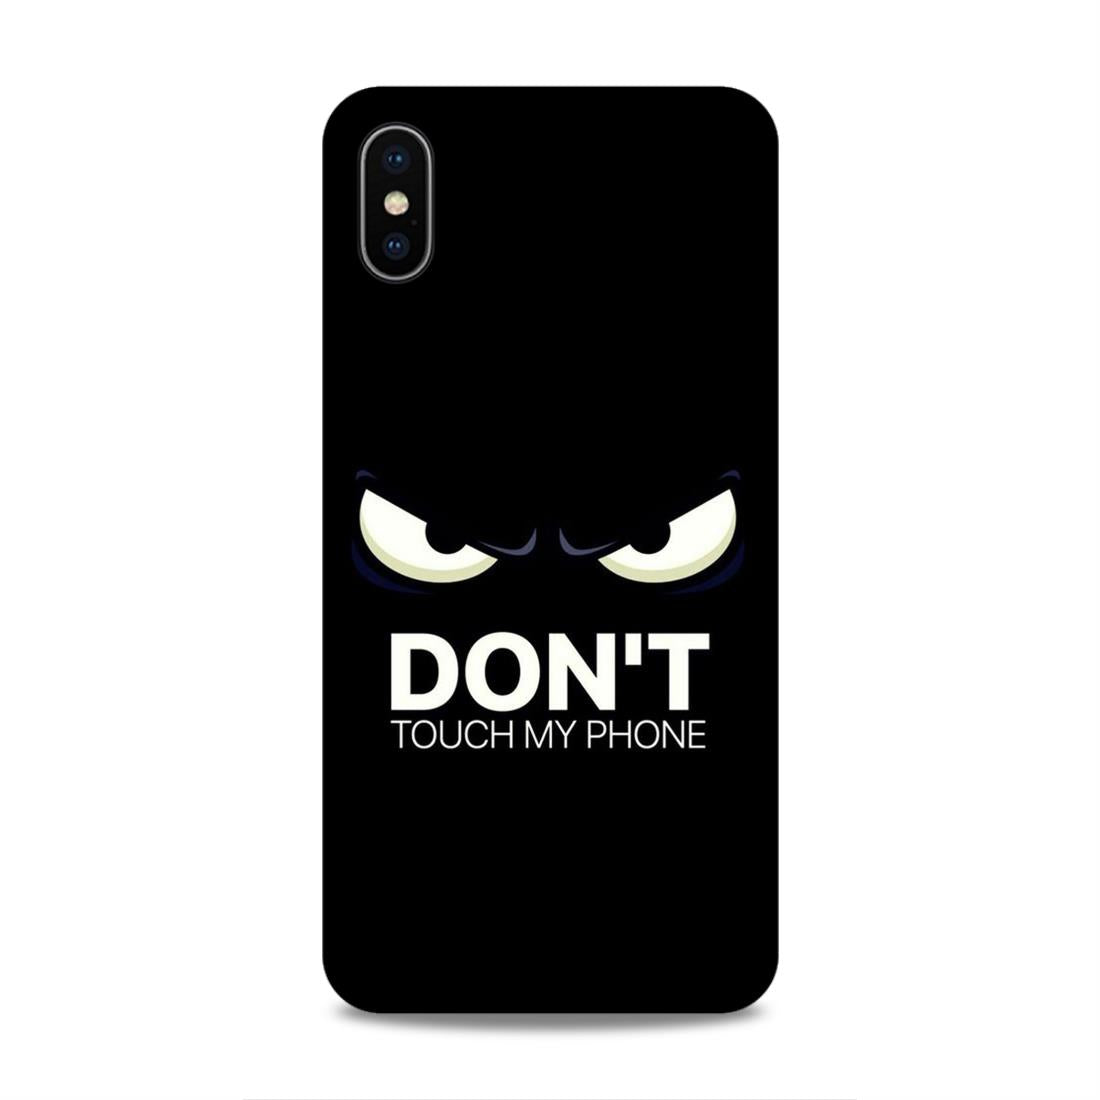 Phone Cases,Apple Phone Cases,iPhone Xs Max,Gaming